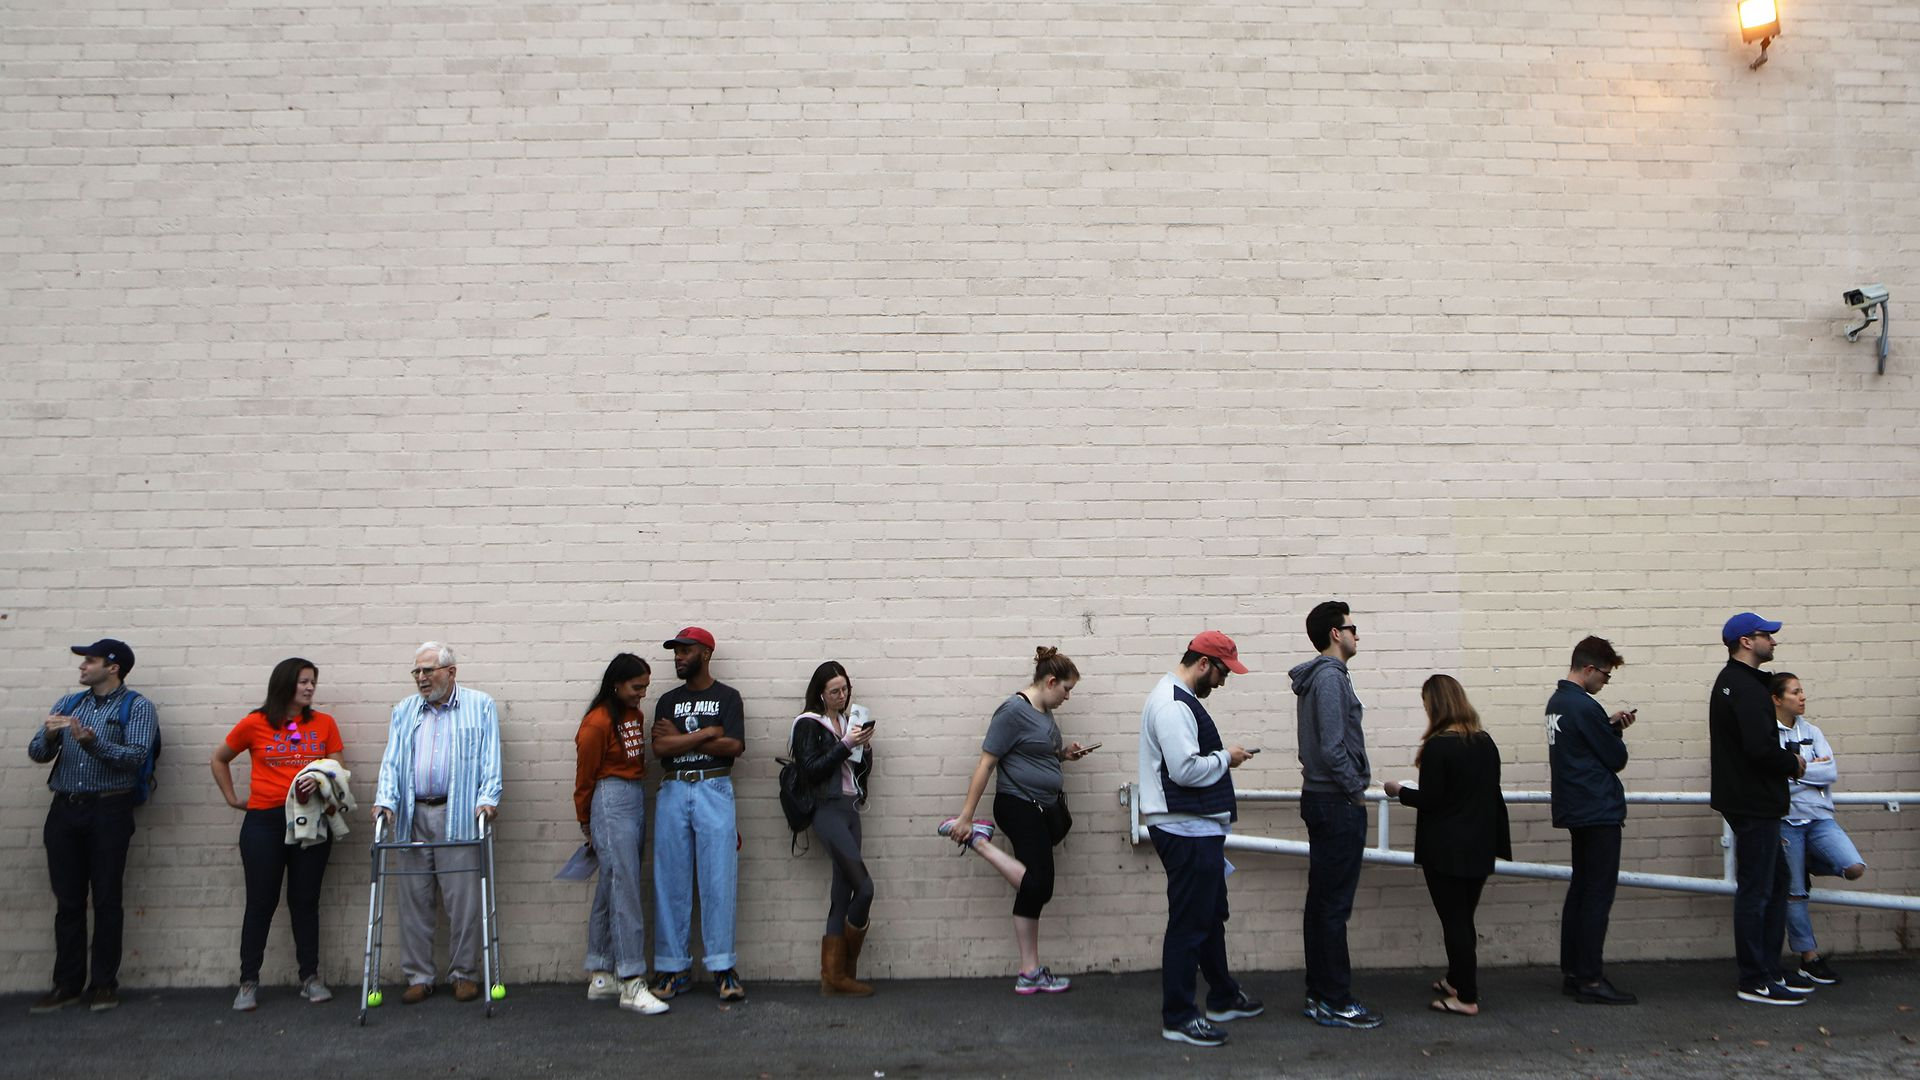 People stand in line to vote at a polling site. There is an old man with a walker and one woman stretching her legs.